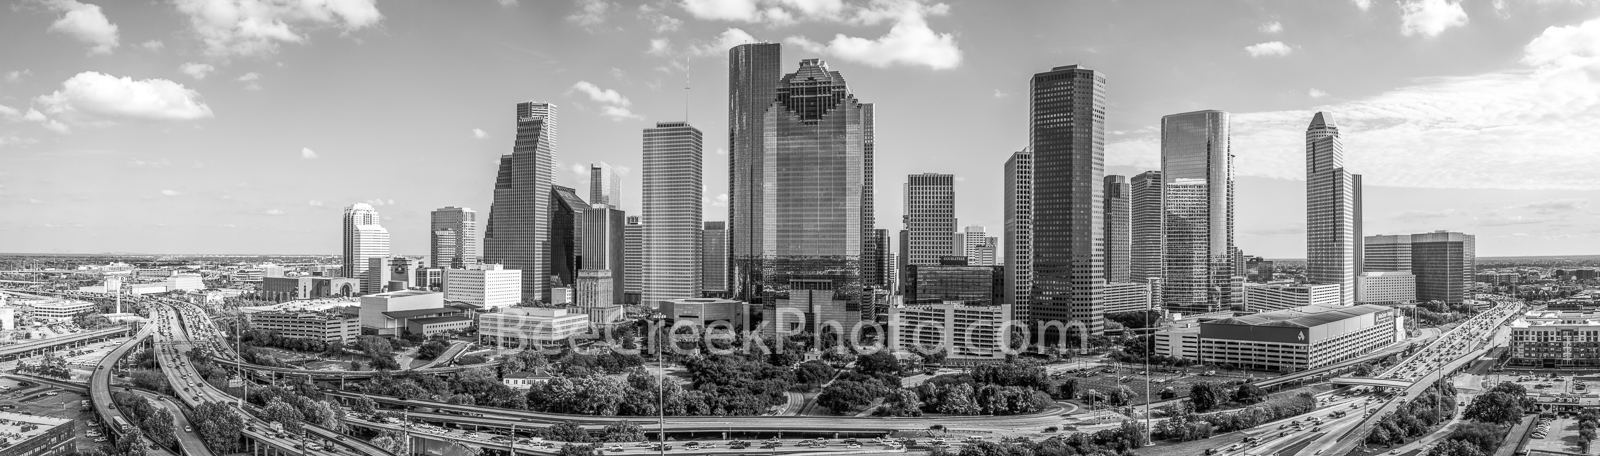 Houston, skyline, Houston skyline, black and white, BW, daytime, aerial, panorama, pano, cityscape, clouds, city, downtown, skyscrapers, buildings, high rise, IH45, museum district, art, culture, musi, photo